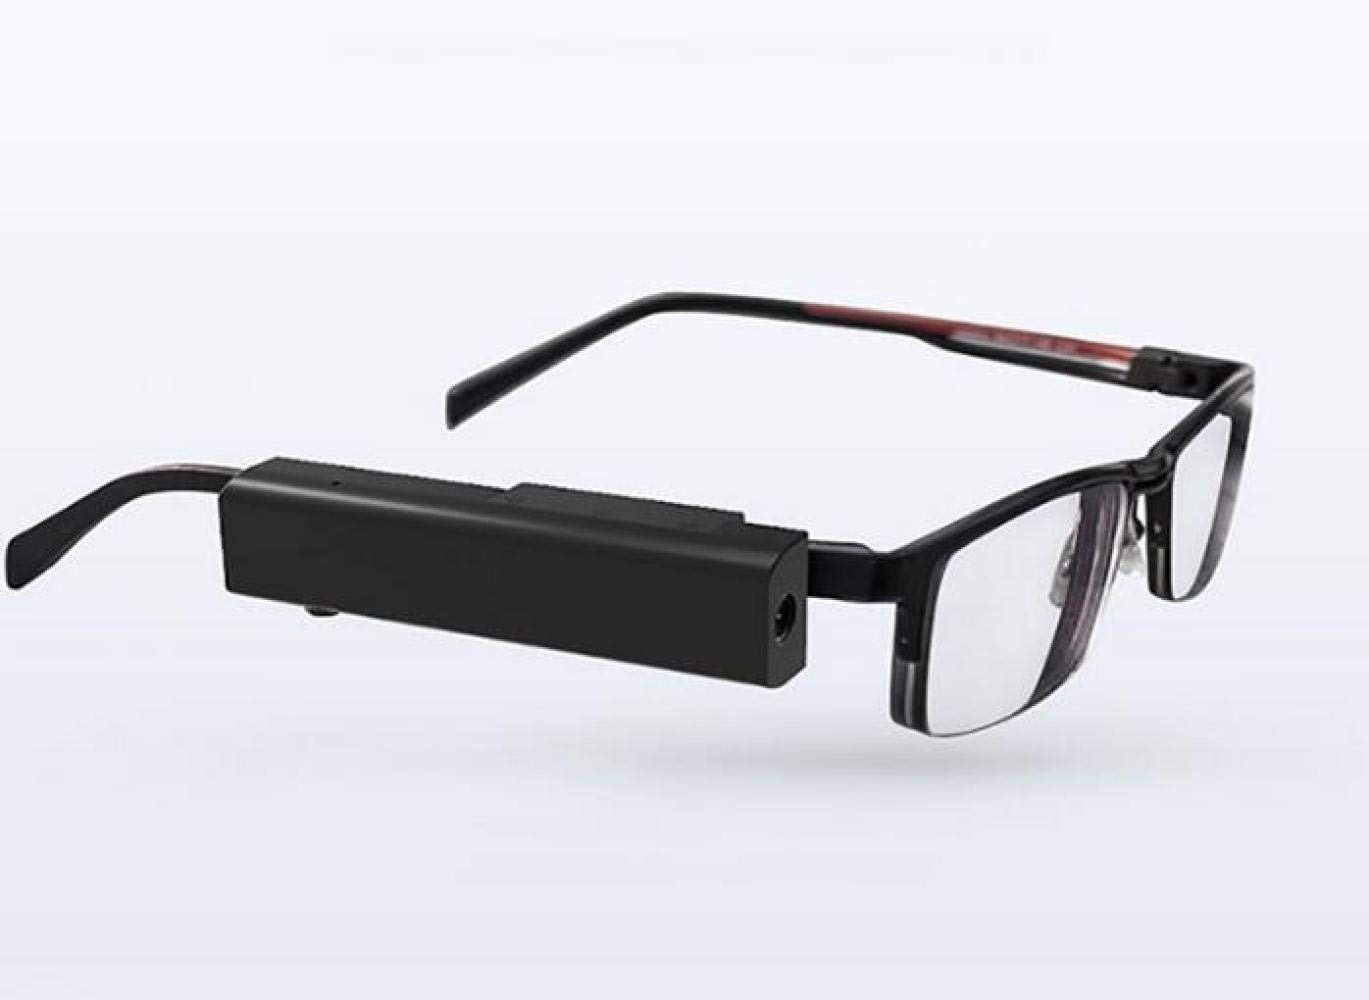 CTO New Smart Stereo Bluetooth Polarized Sunglasses Money Glasses Drive Song Called Sunglasses,A,Glasses